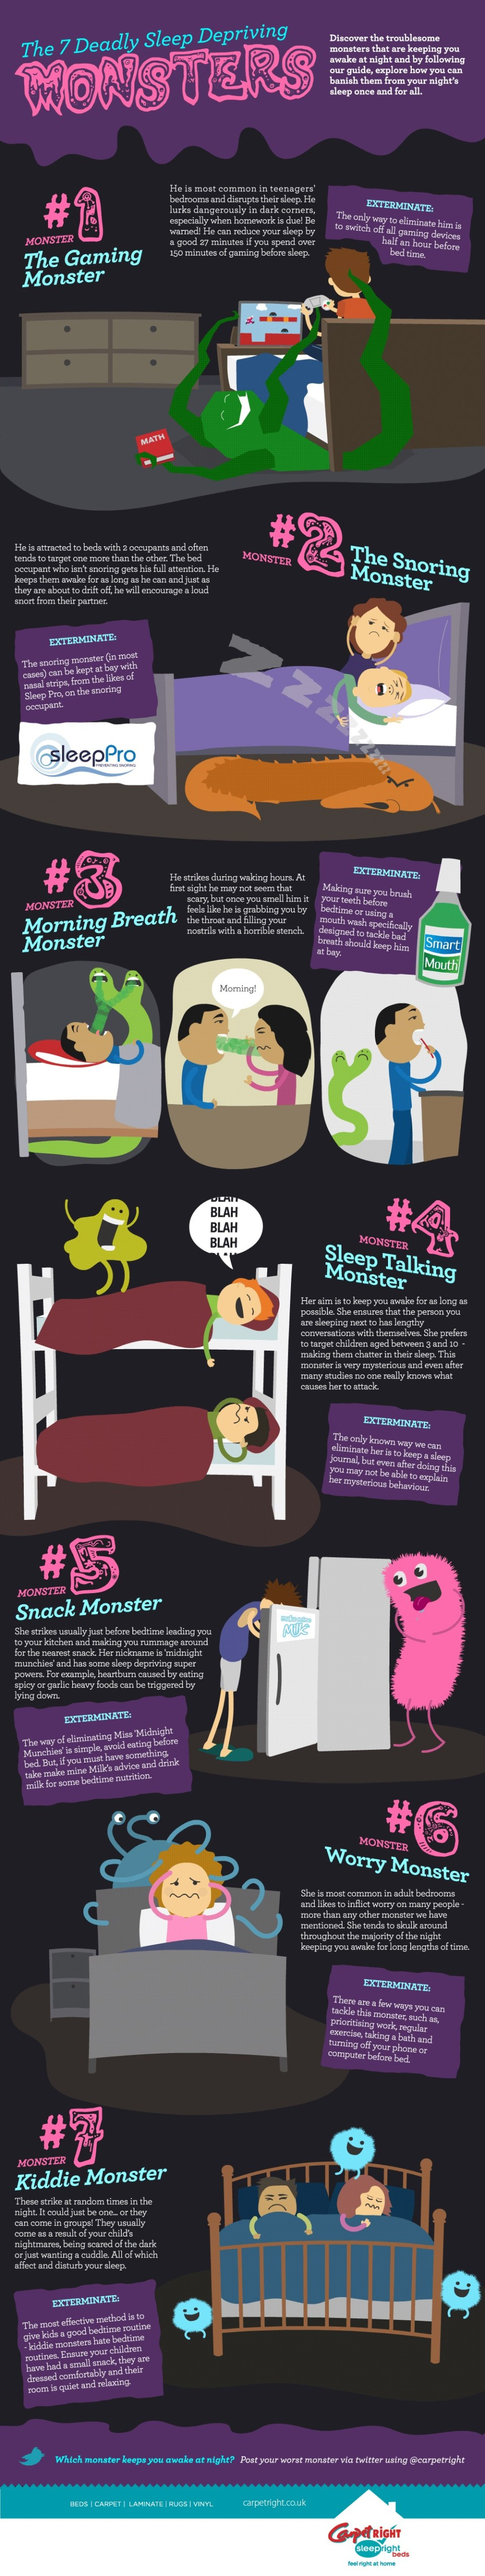 Sleep Monsters – Which One Keeps You Awake At Night?